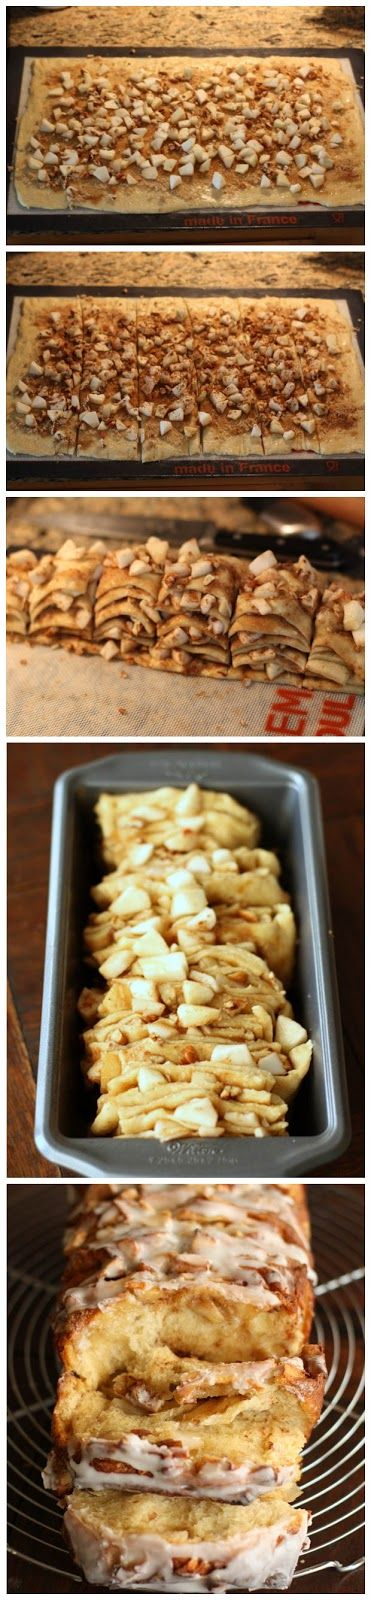 Cinnamon Apple Pull Apart Bread. looks a little out of my cooking reach but worth a try!